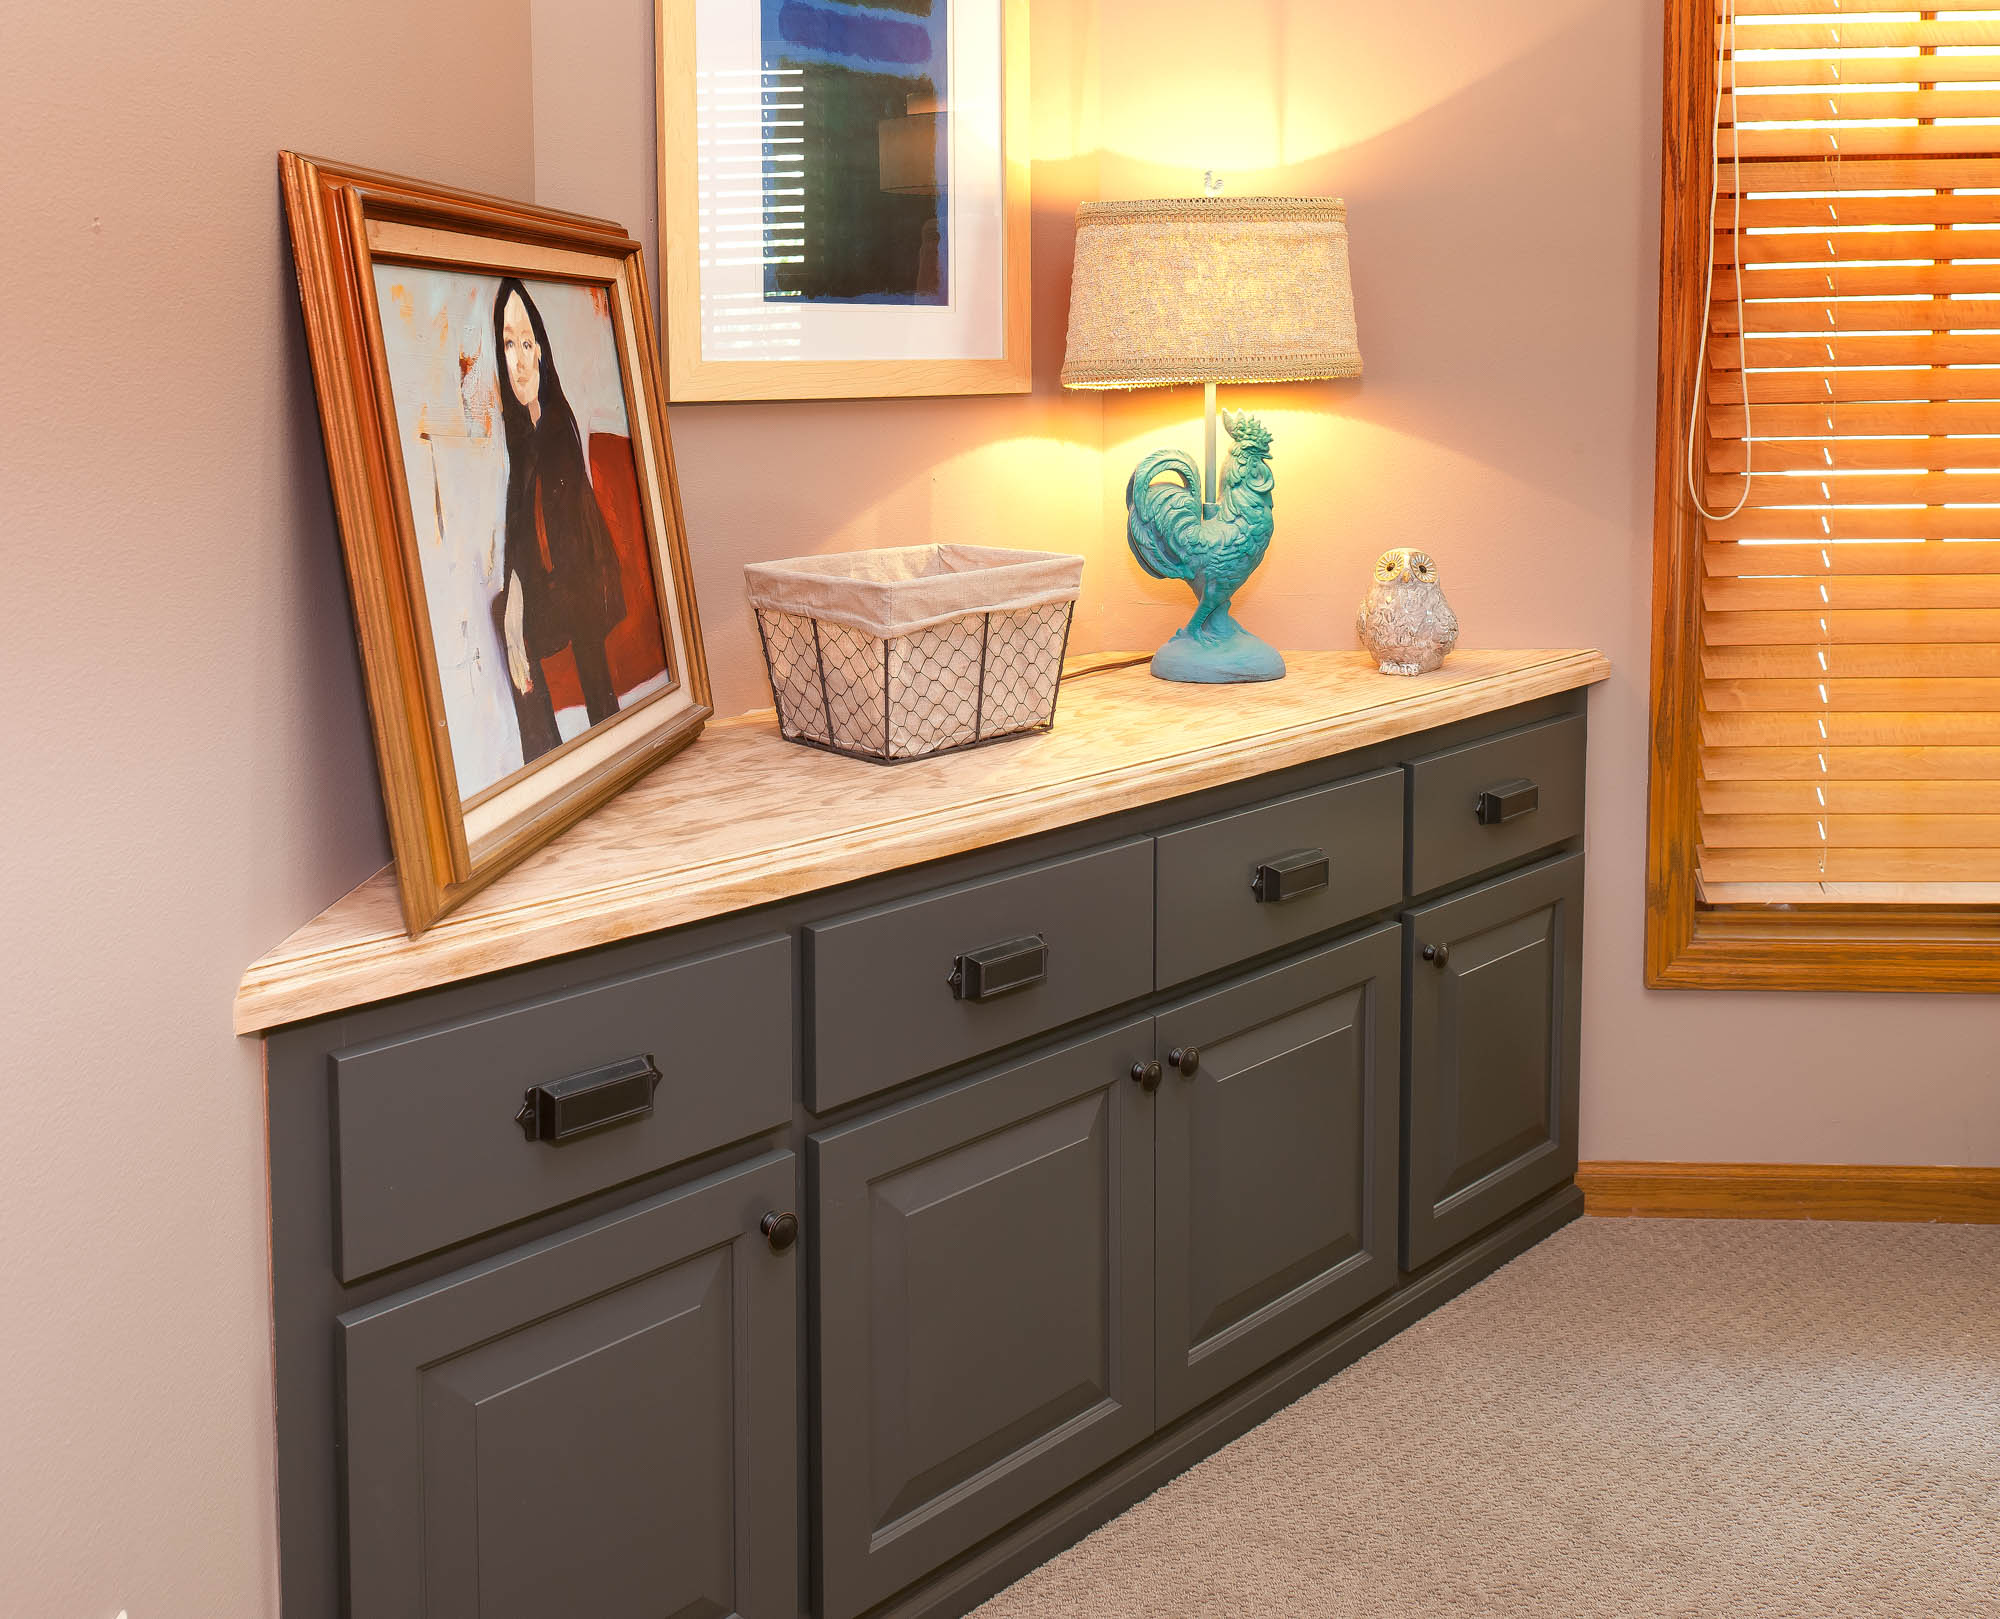 Renew | Painted master bedroom bench in Graphite by Showplace Cabinetry